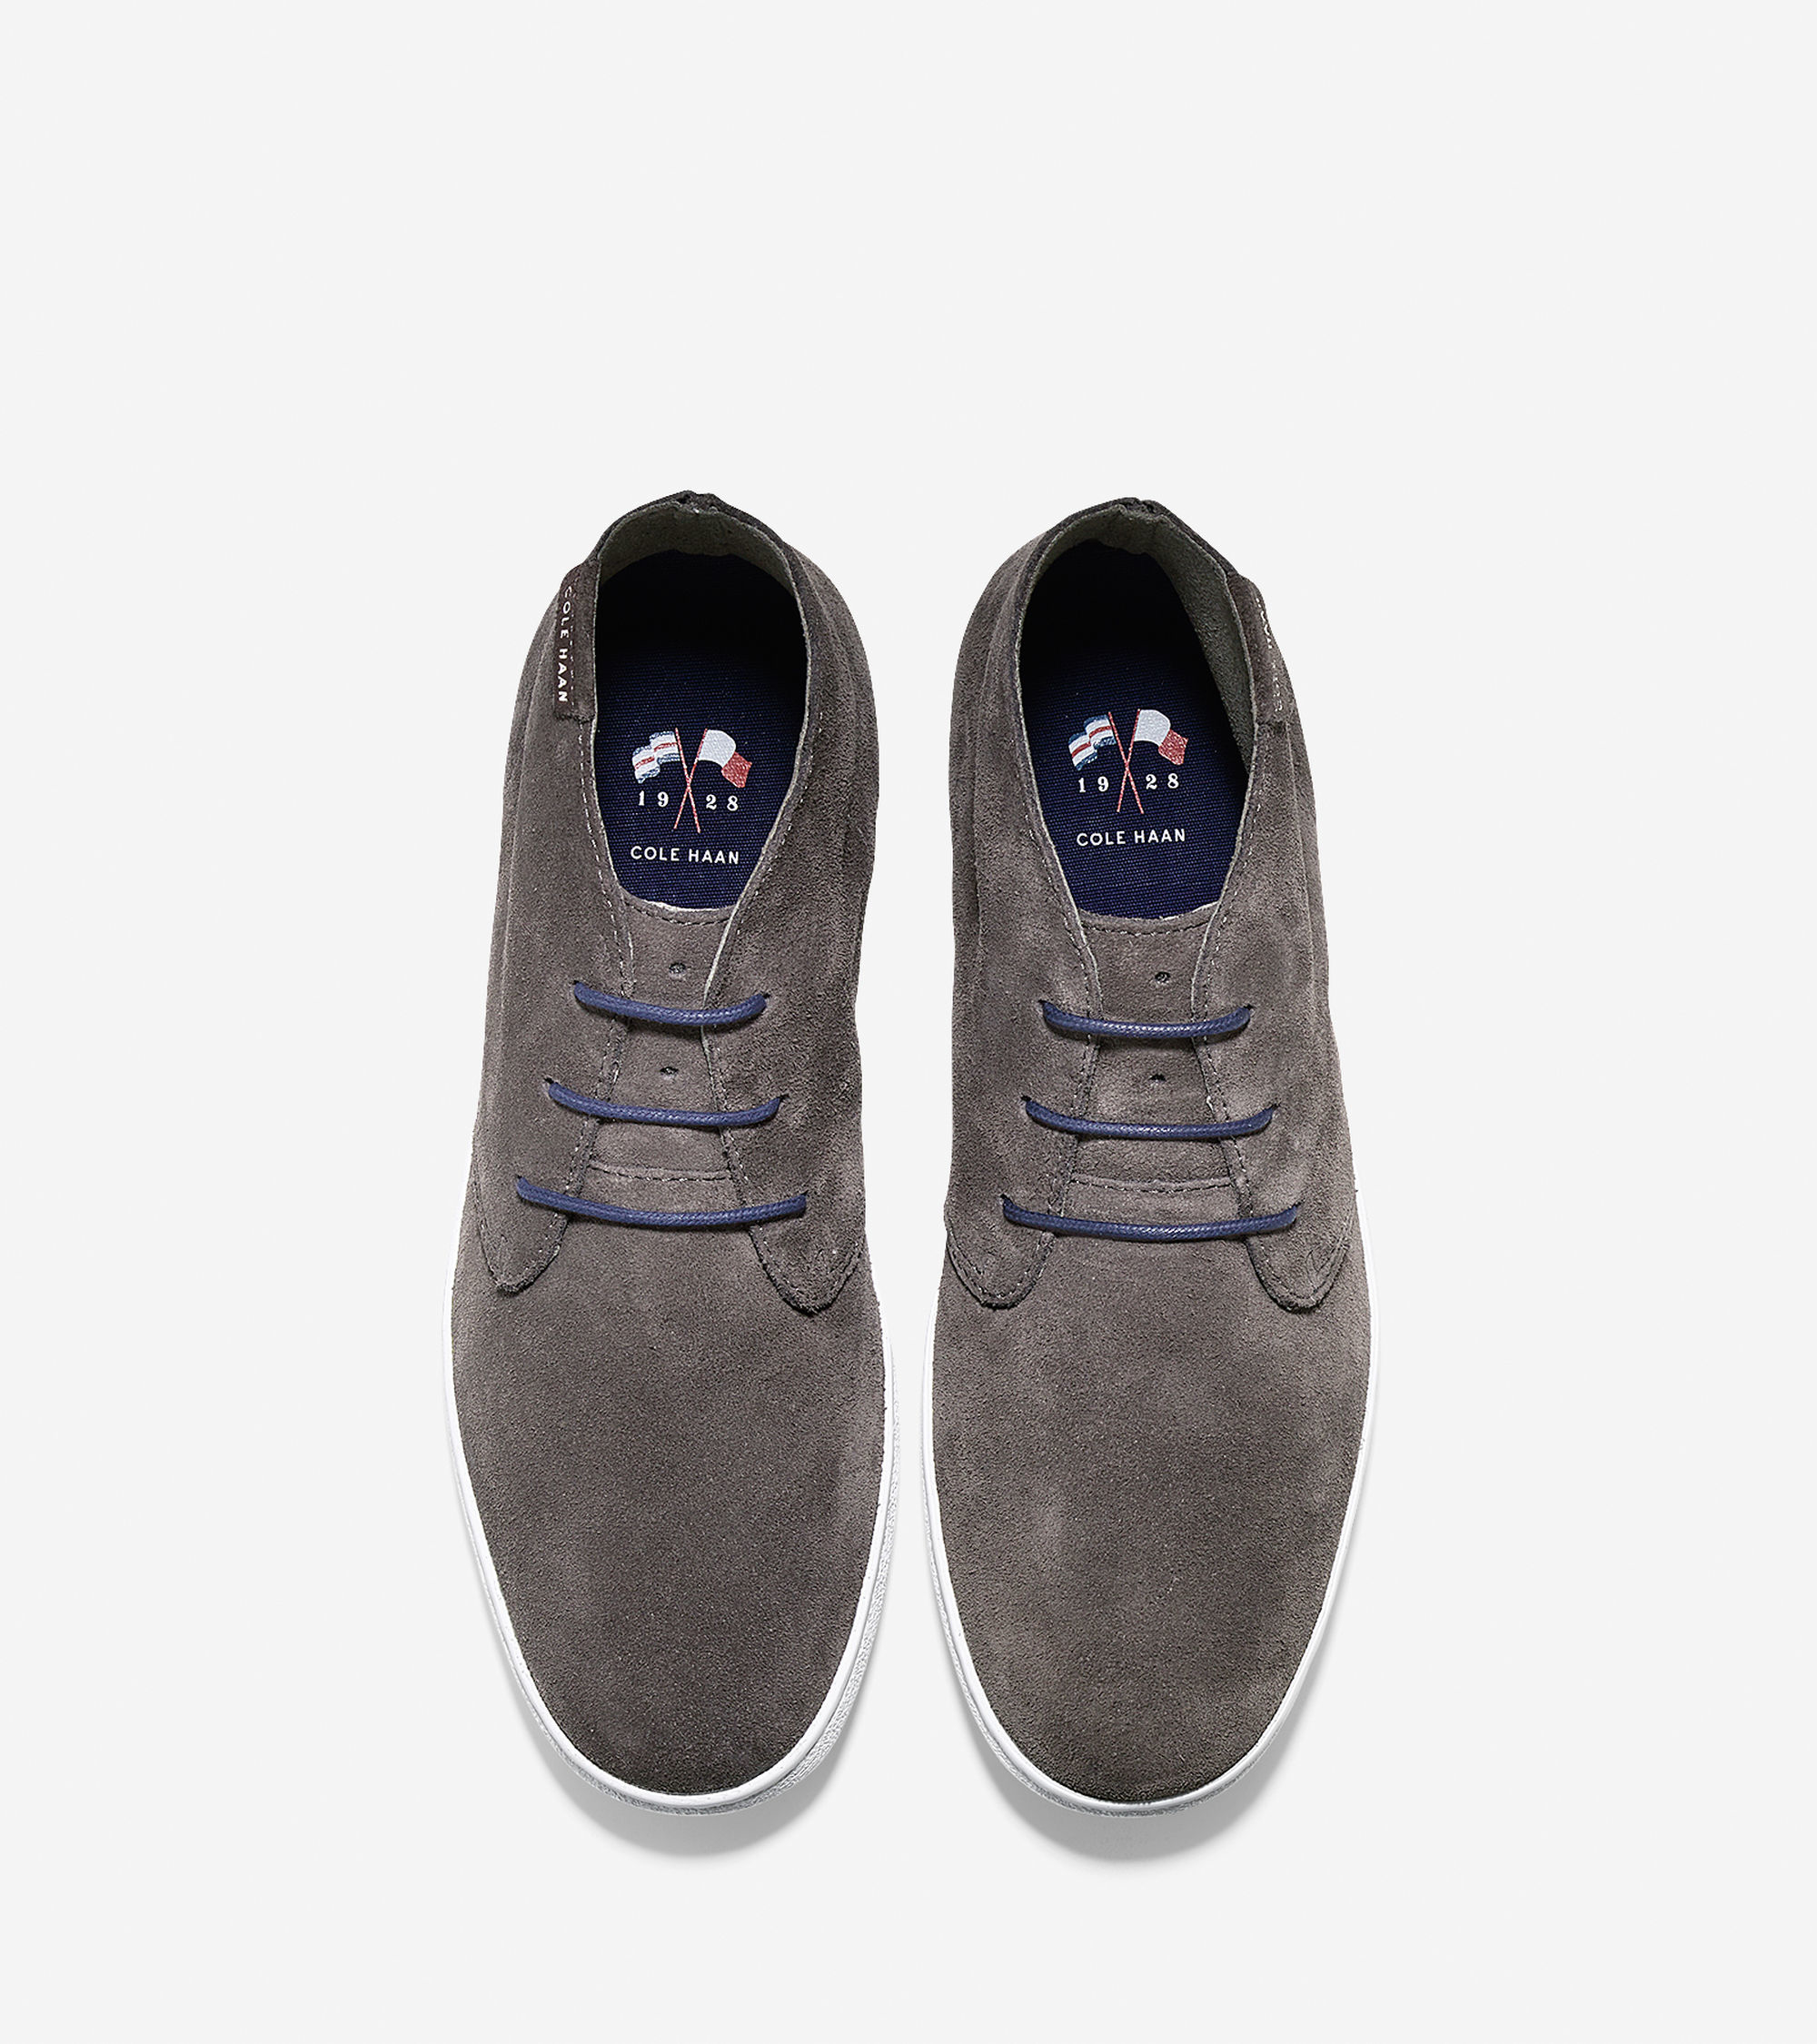 cole haan nantucket suede chukka boots in gray for lyst